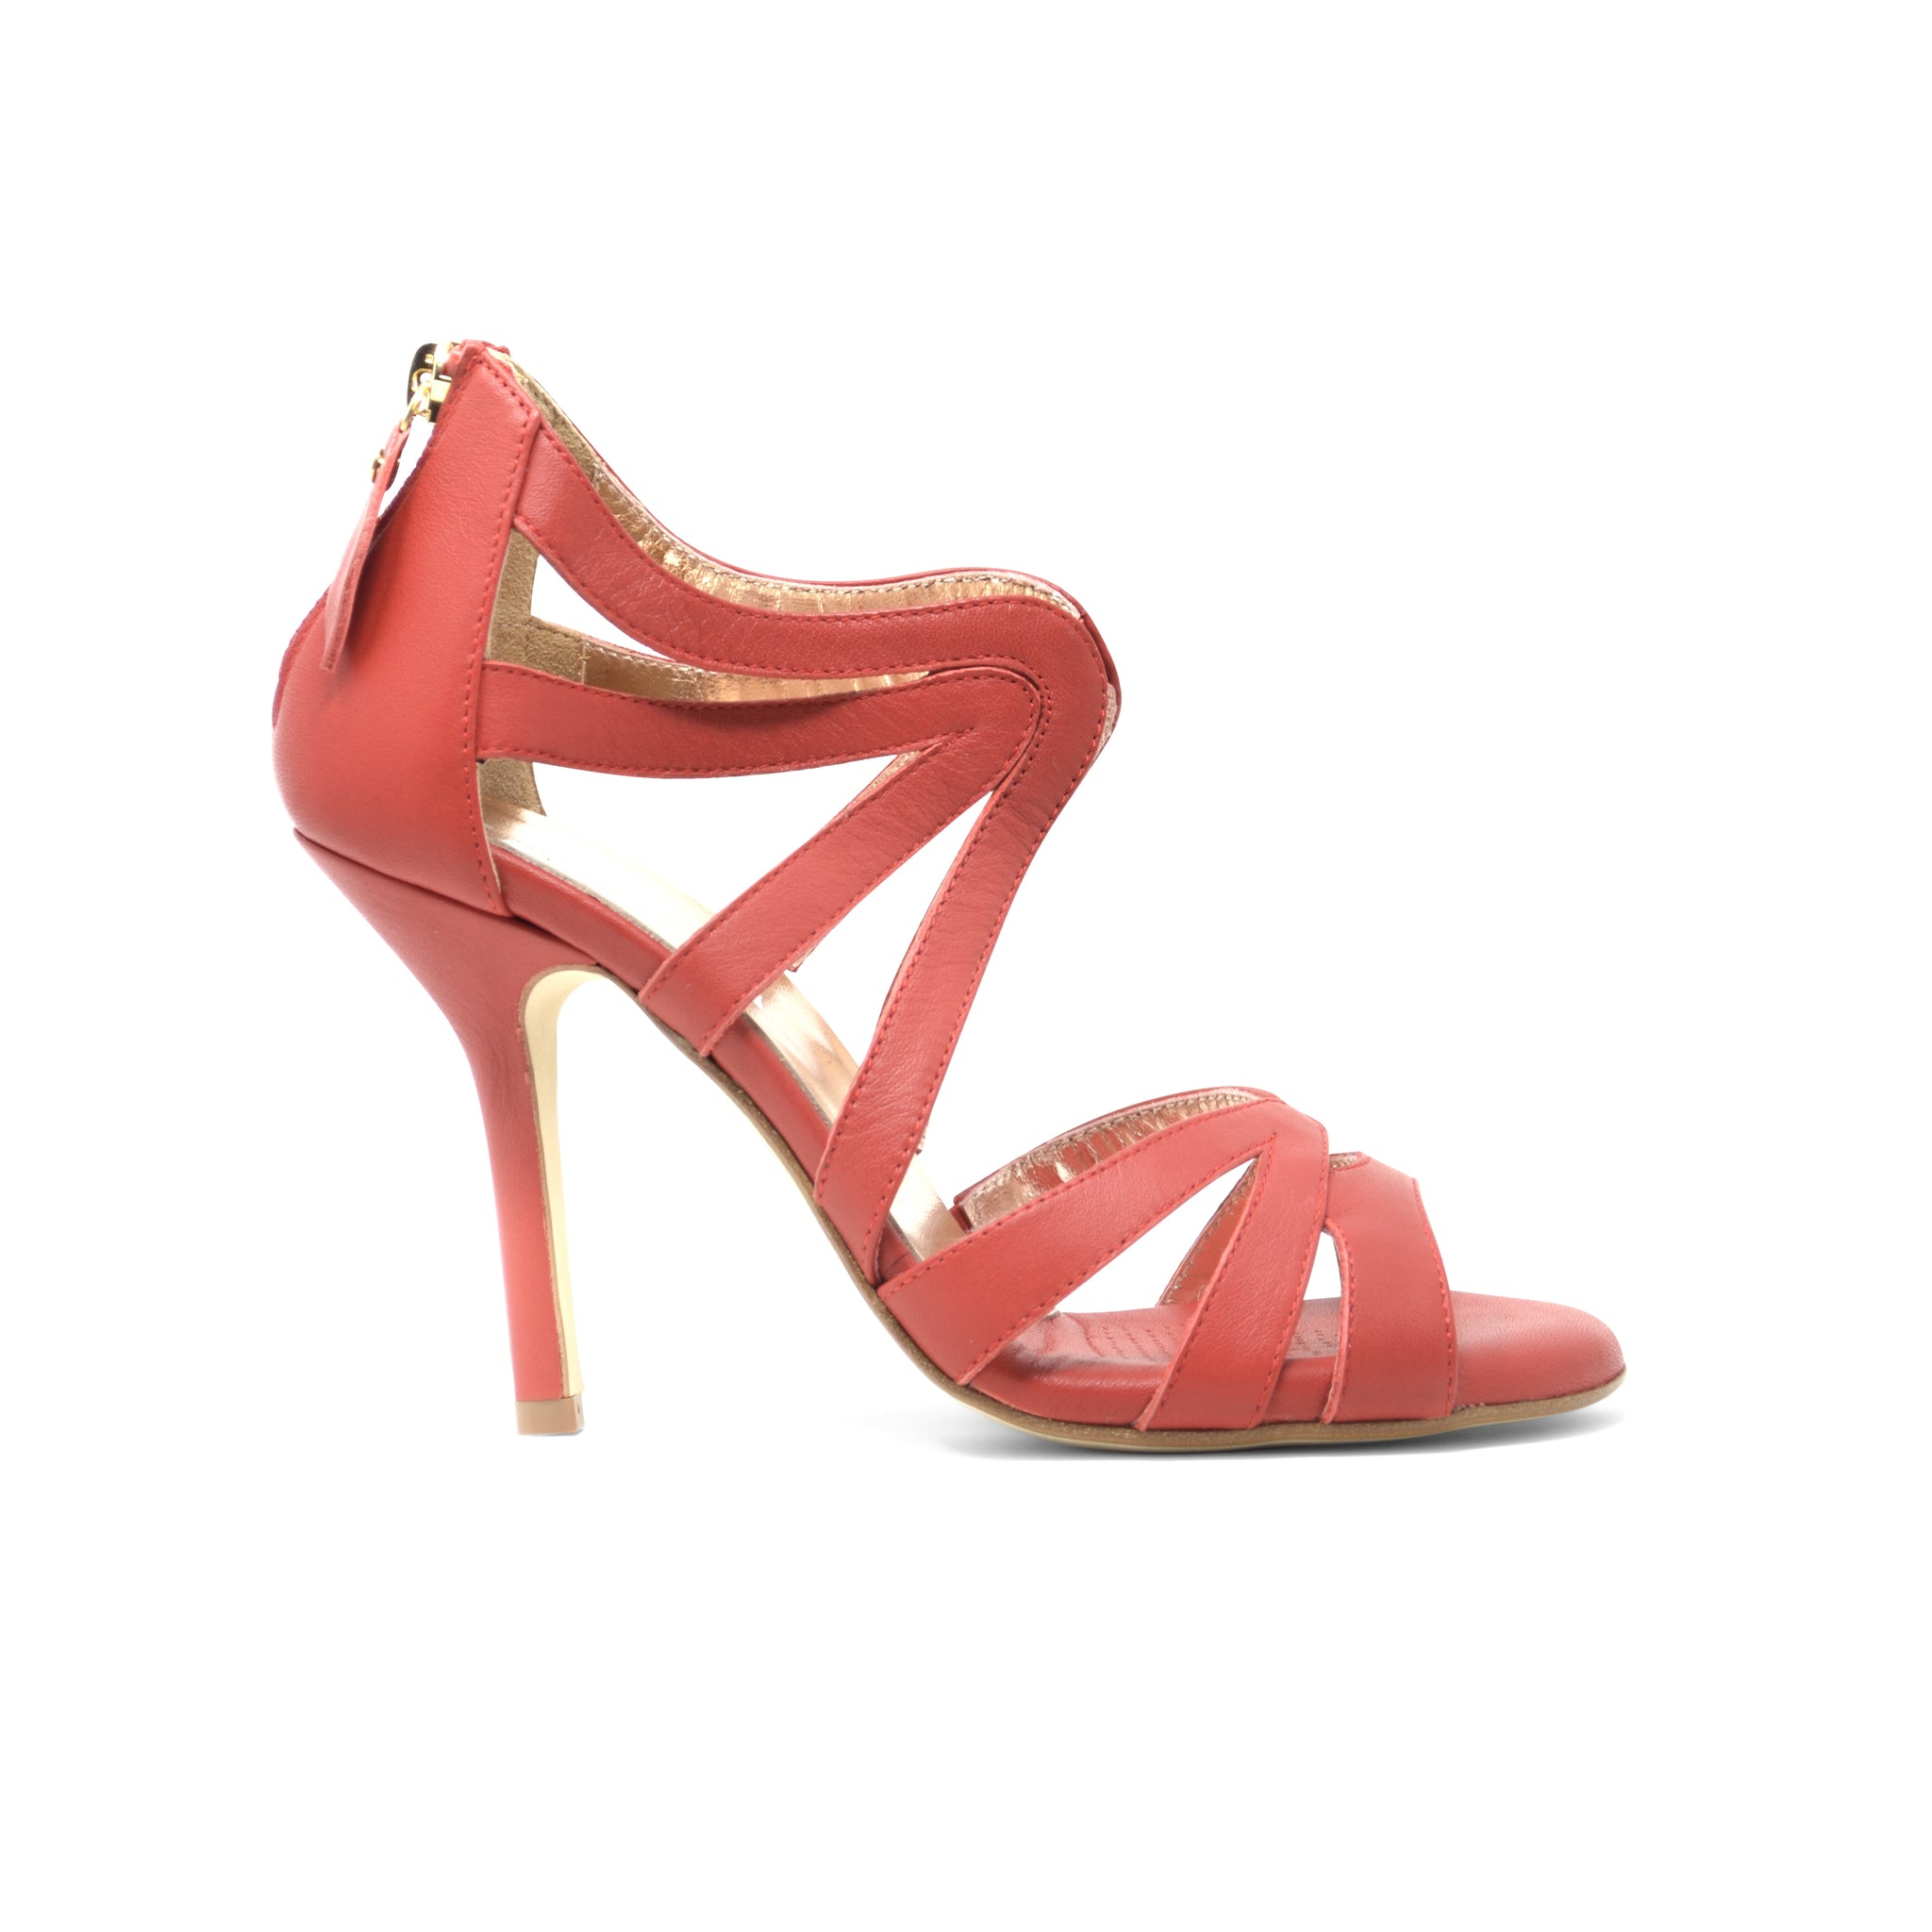 Size 6 - Riccione in Red Leather - Regina